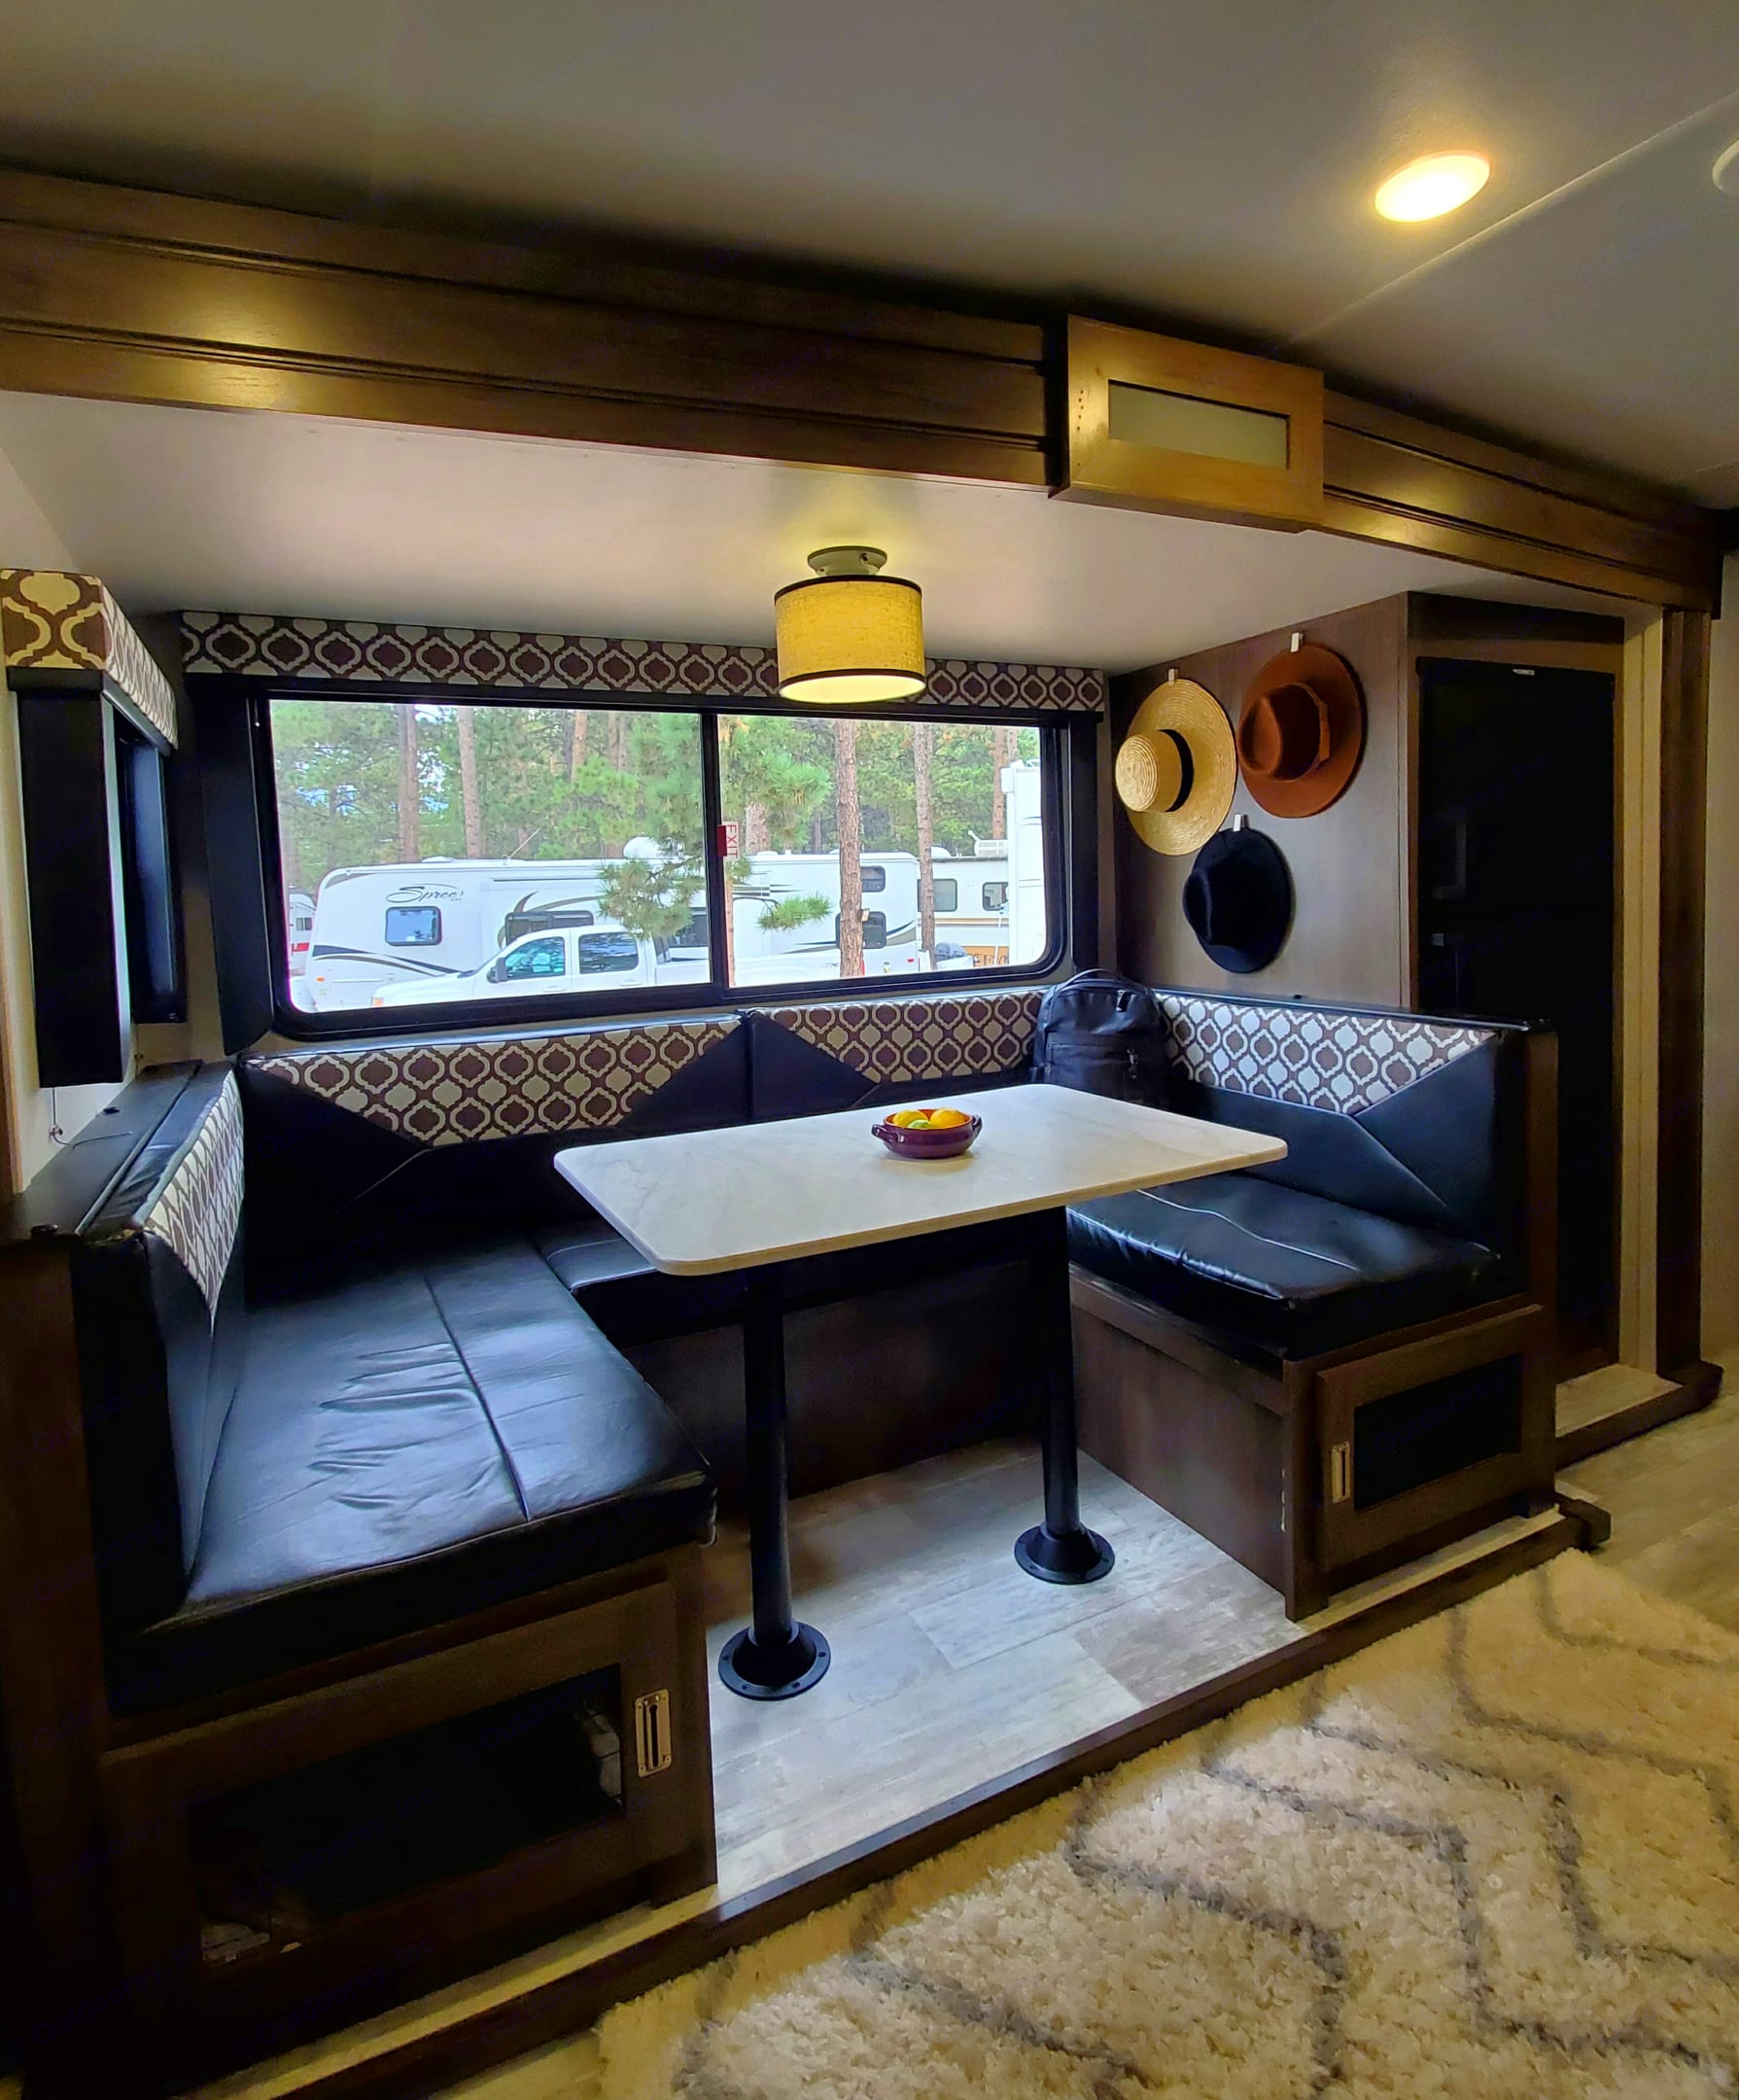 The Dinette converts to a sleeping area that can sleep 2 comfortably. We've also converted the area under the bench to hold 2 small pets.. Forest River Tracer 2021